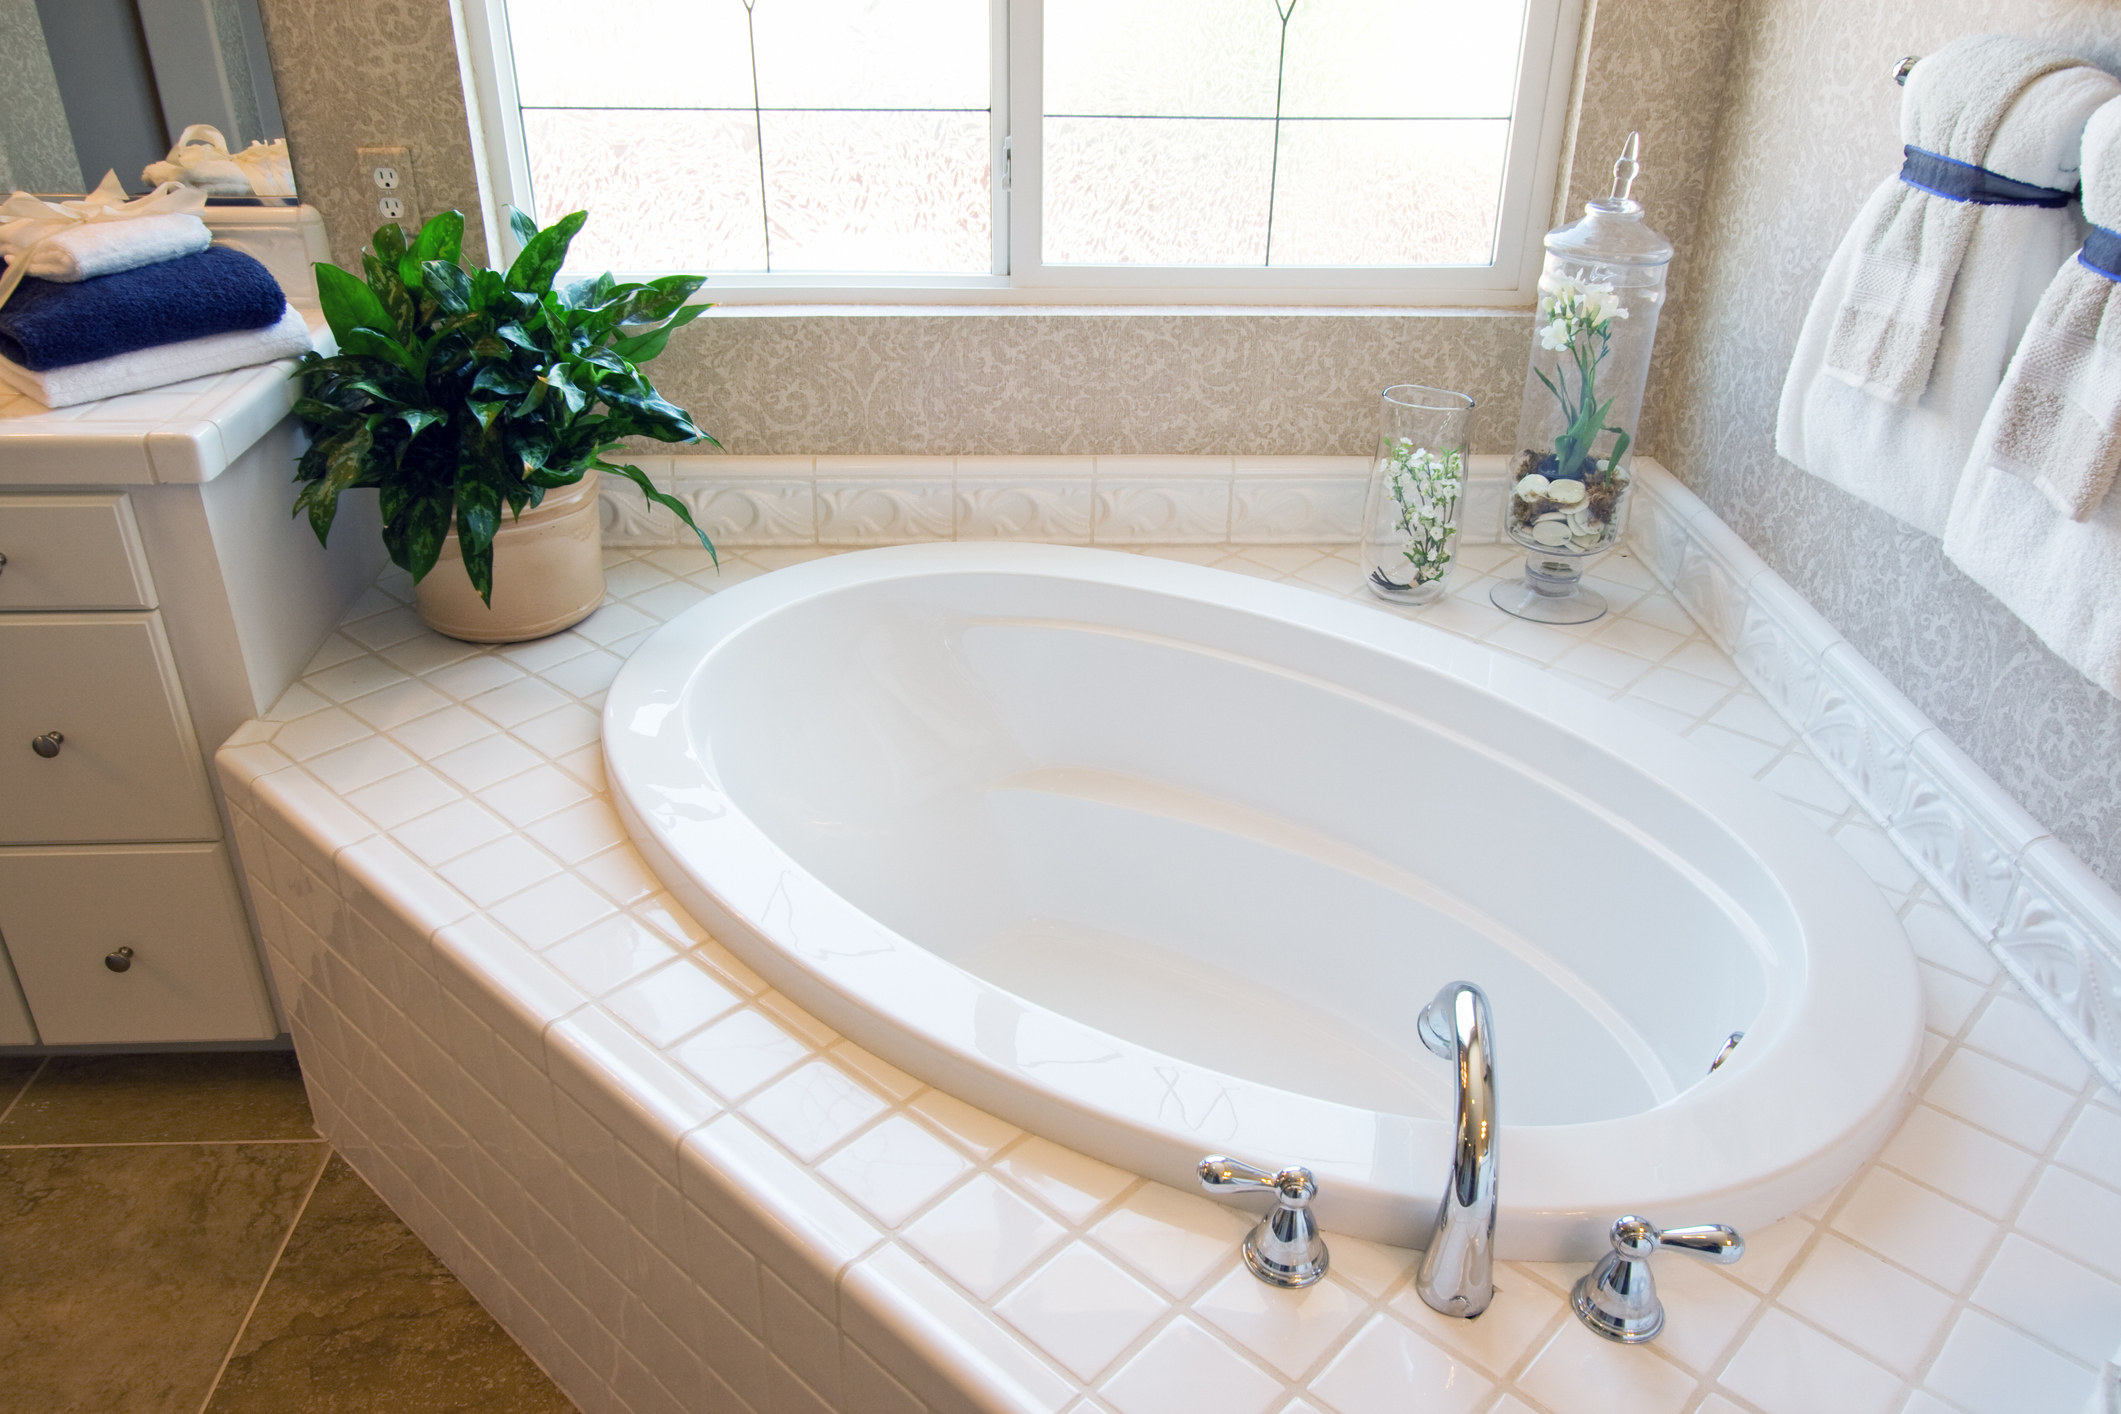 A large bath tub in the corner covered with white tile